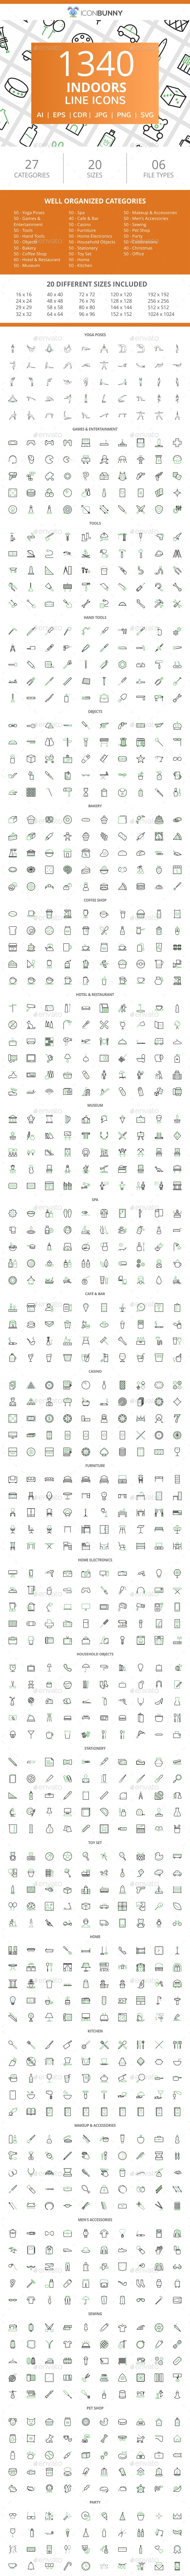 1340 Indoors Line Green & Black Icons - Icons